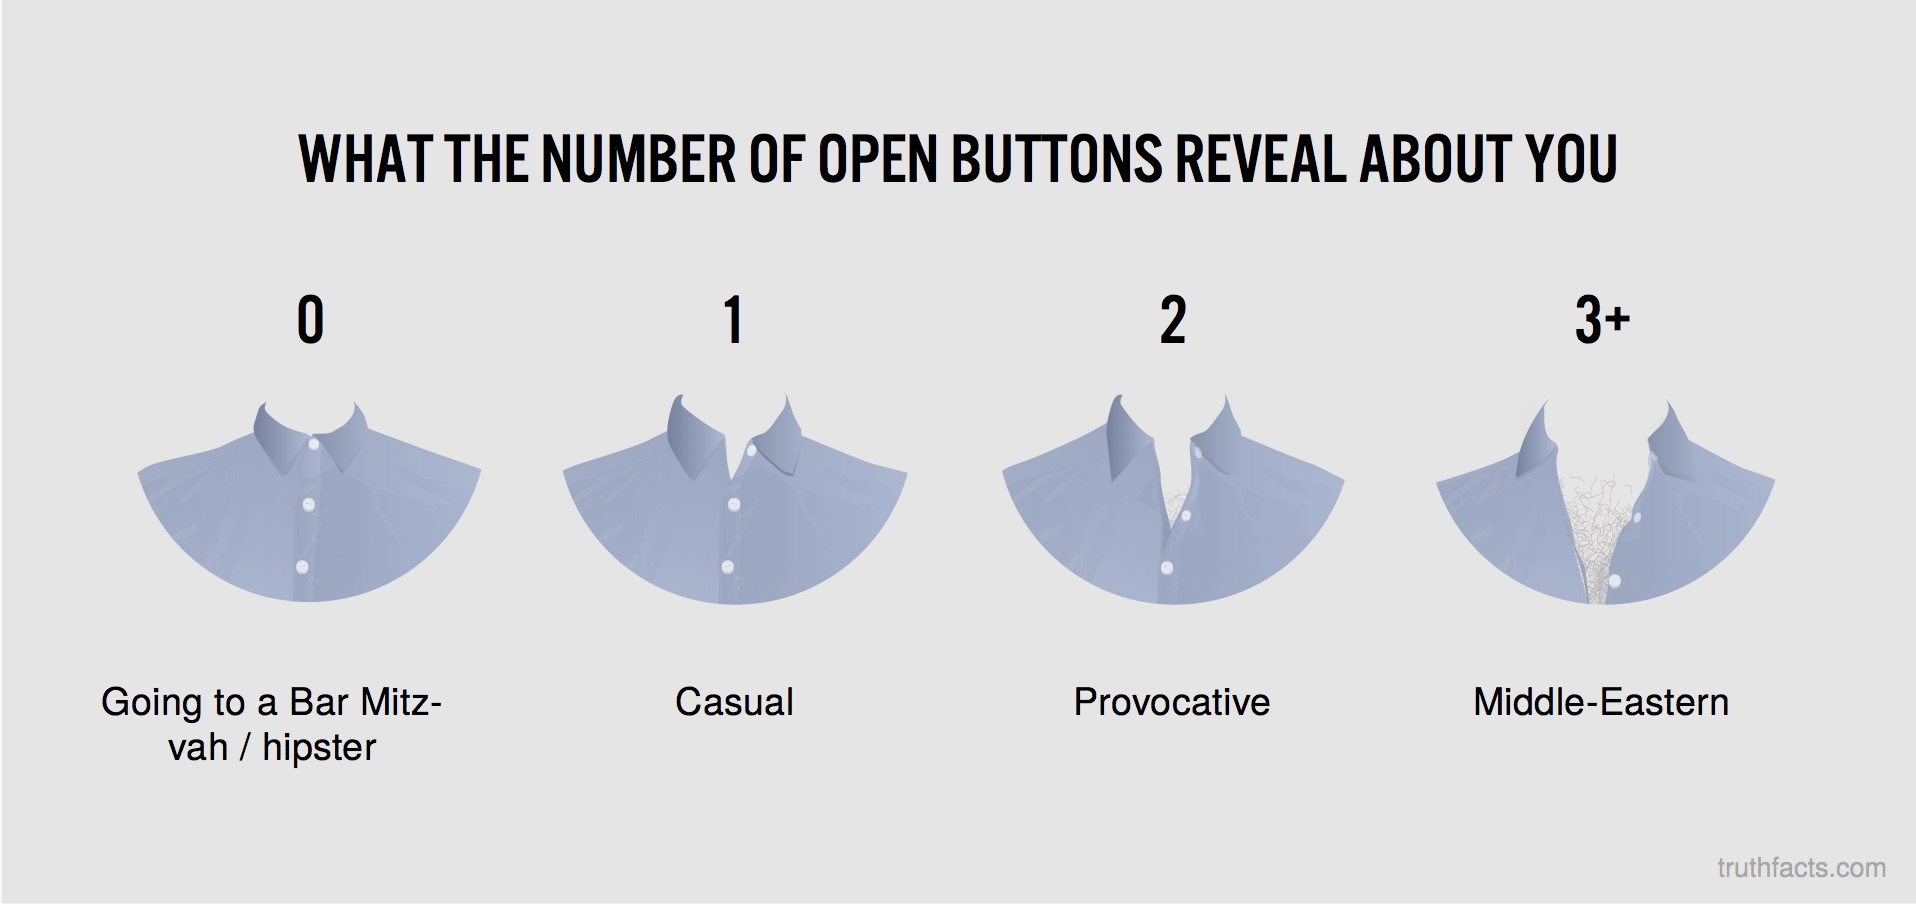 What the number of open buttons reveal about you